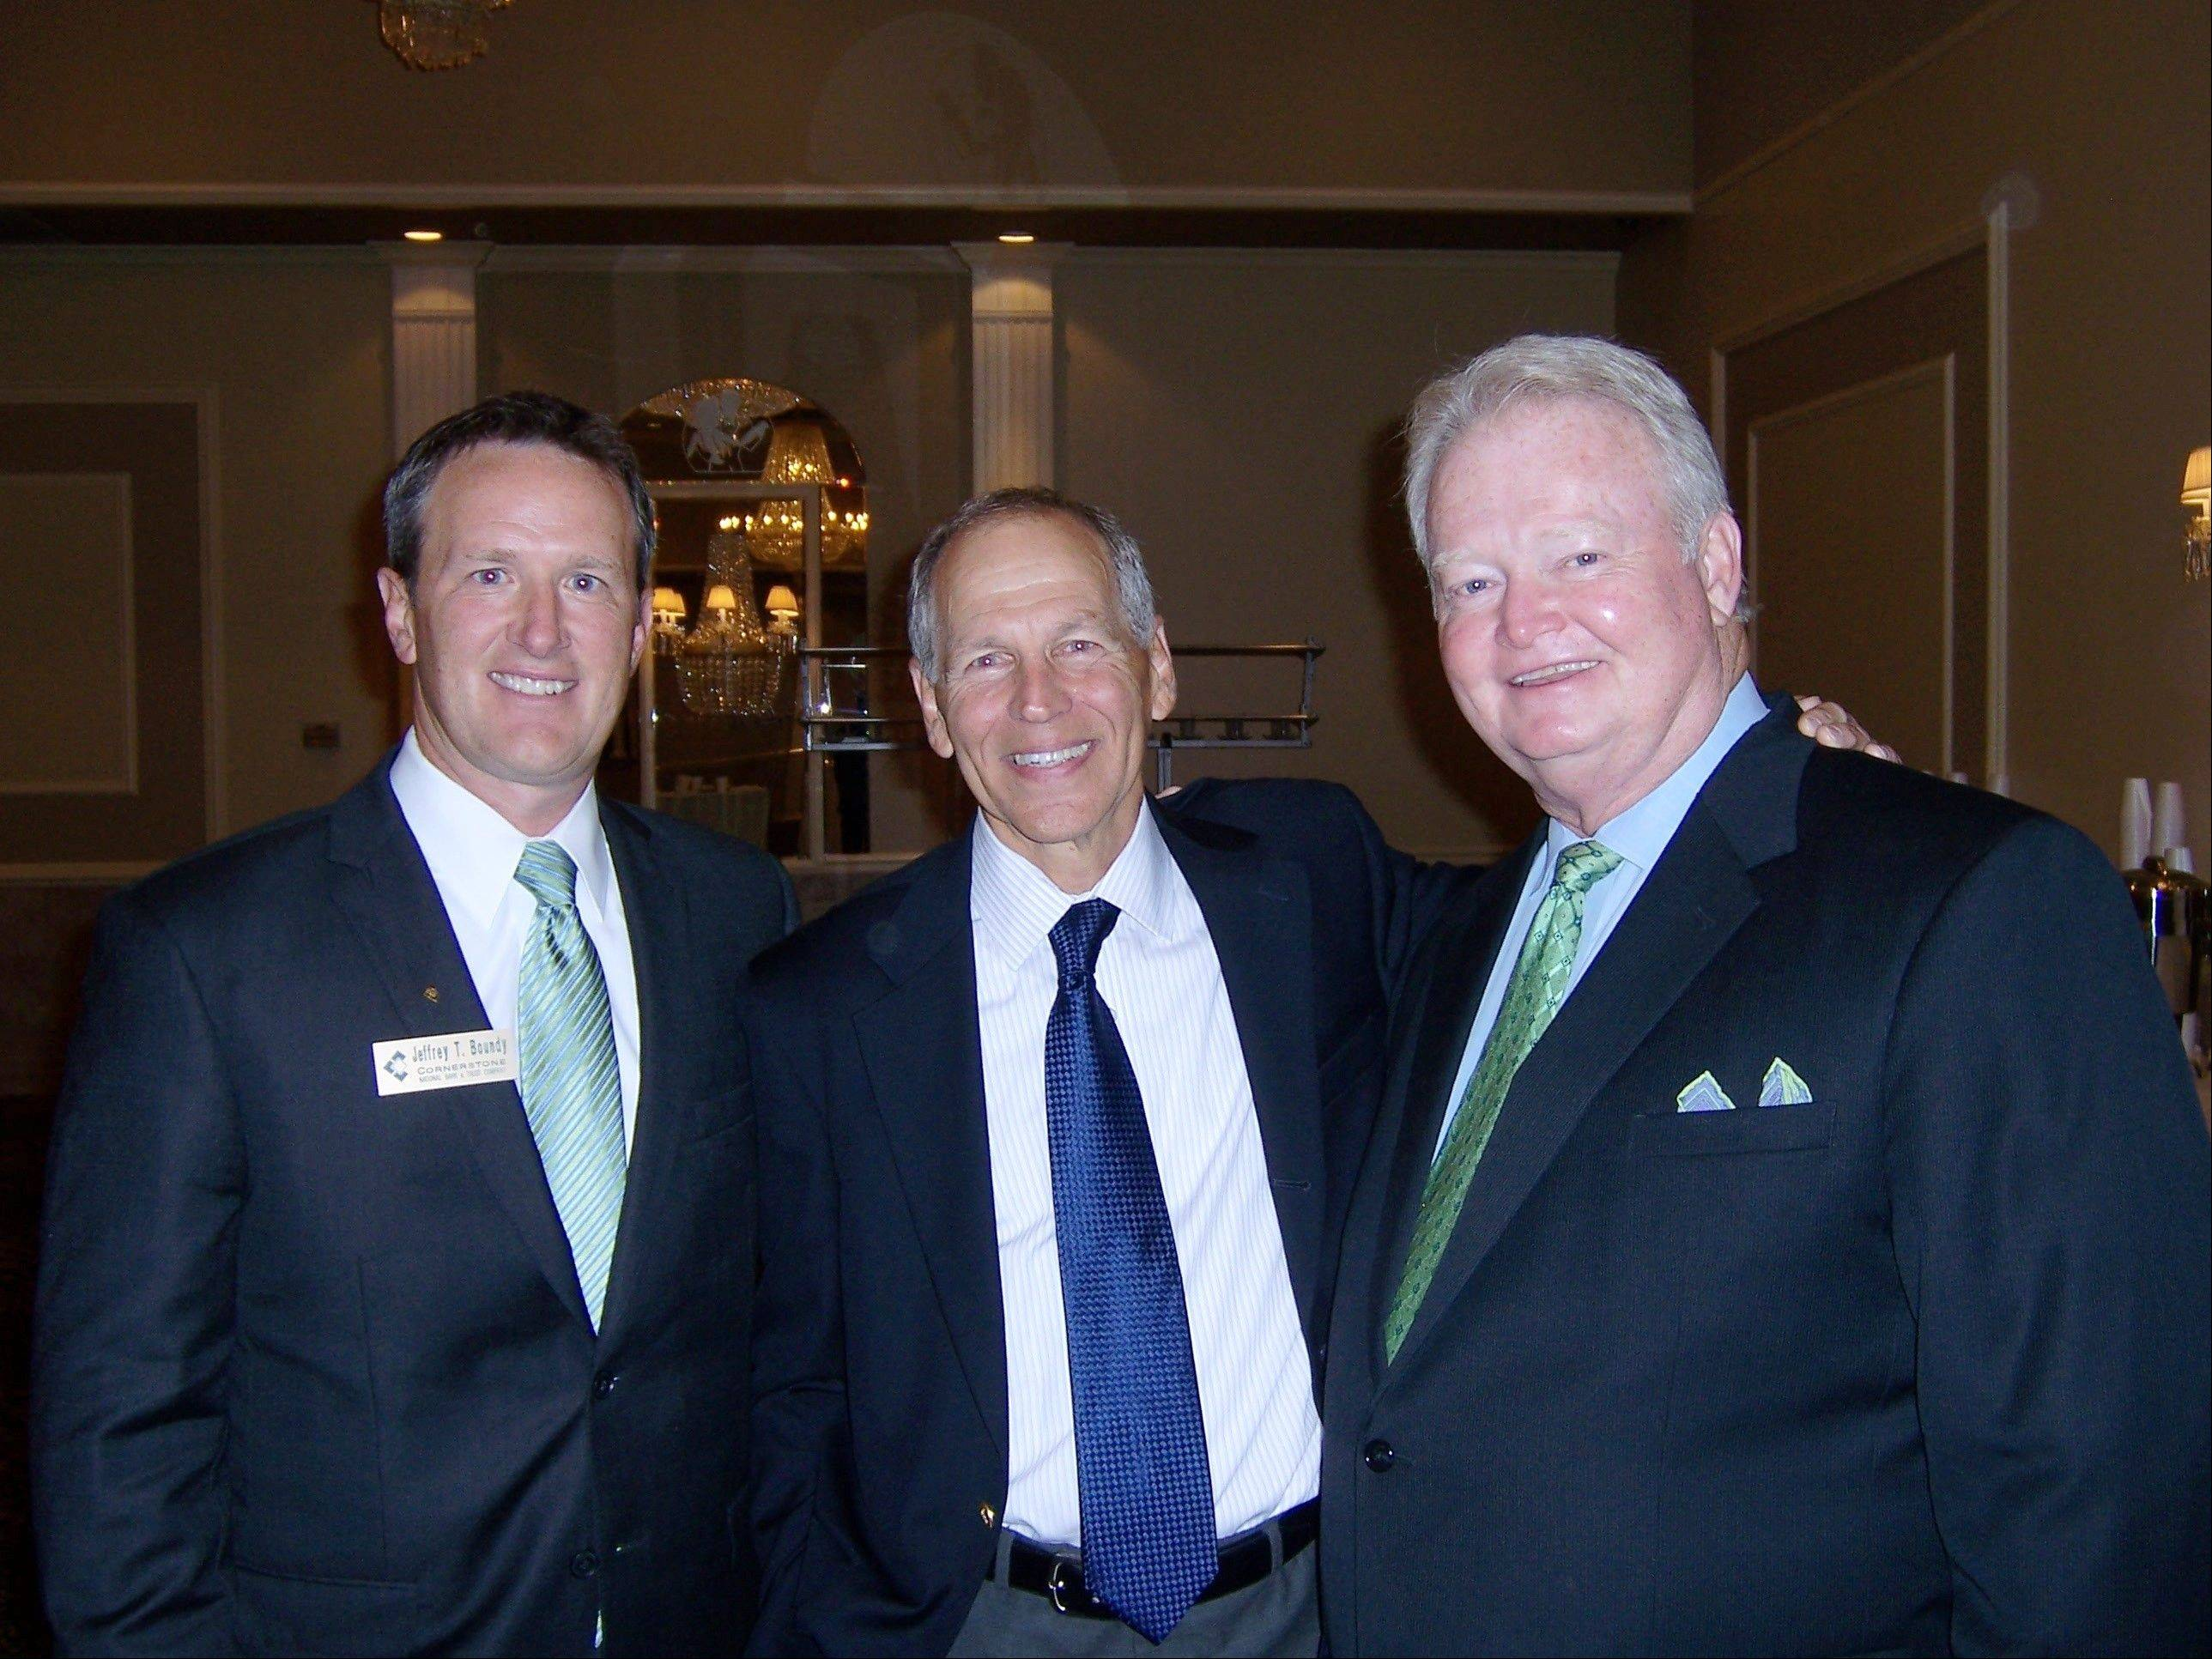 Jeff Boundy, left, president and senior lender at Cornerstone National Bank & Trust Company, economist Robert Genetski and Tom MacCarthy, chairman and CEO at Cornerstone, were part of Thursday's 10th annual economic forecast held in Palatine.